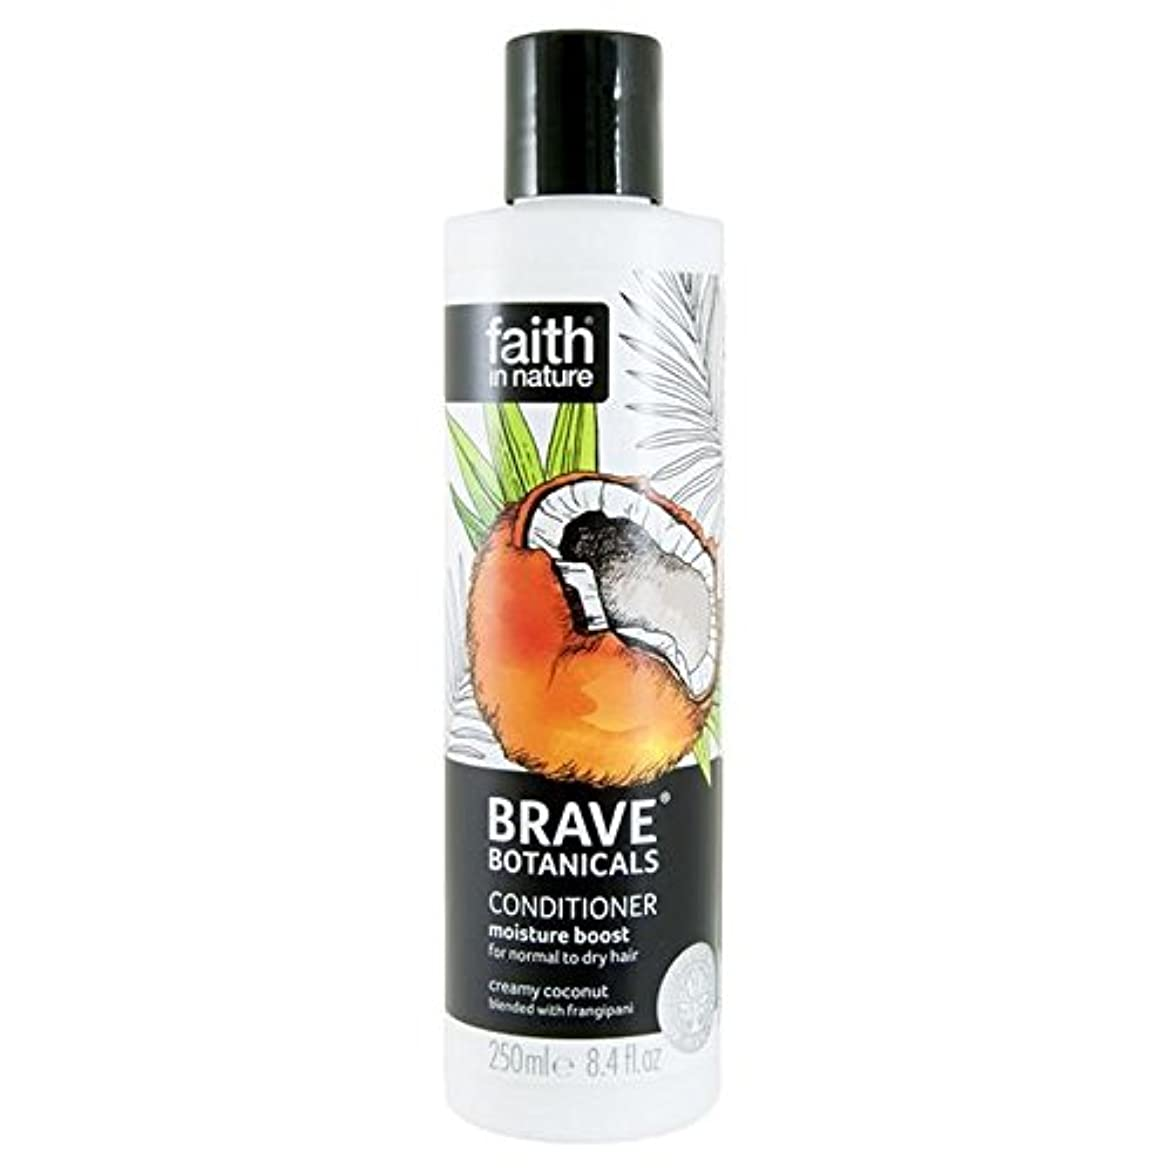 数学者頭チェスをするBrave Botanicals Coconut & Frangipani Moisture Boost Conditioner 250ml (Pack of 6) - (Faith In Nature) 勇敢な植物ココナッツ...